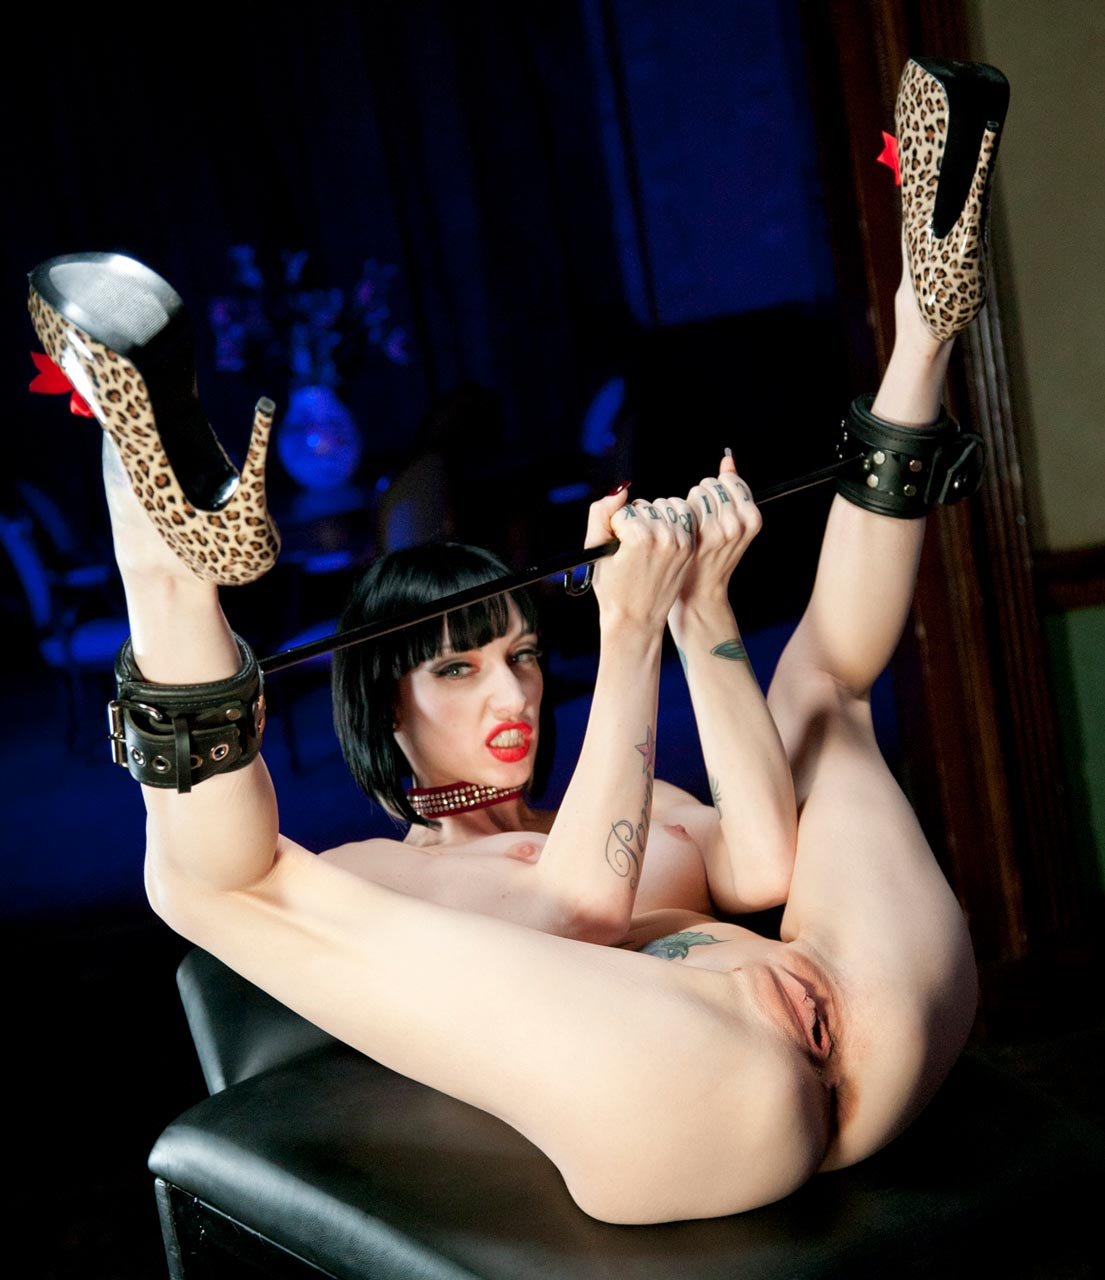 Sofia Valentine, spreads her shaved pussy while wearing High Heels in a BDSM Fetish video from Harmony Vision.